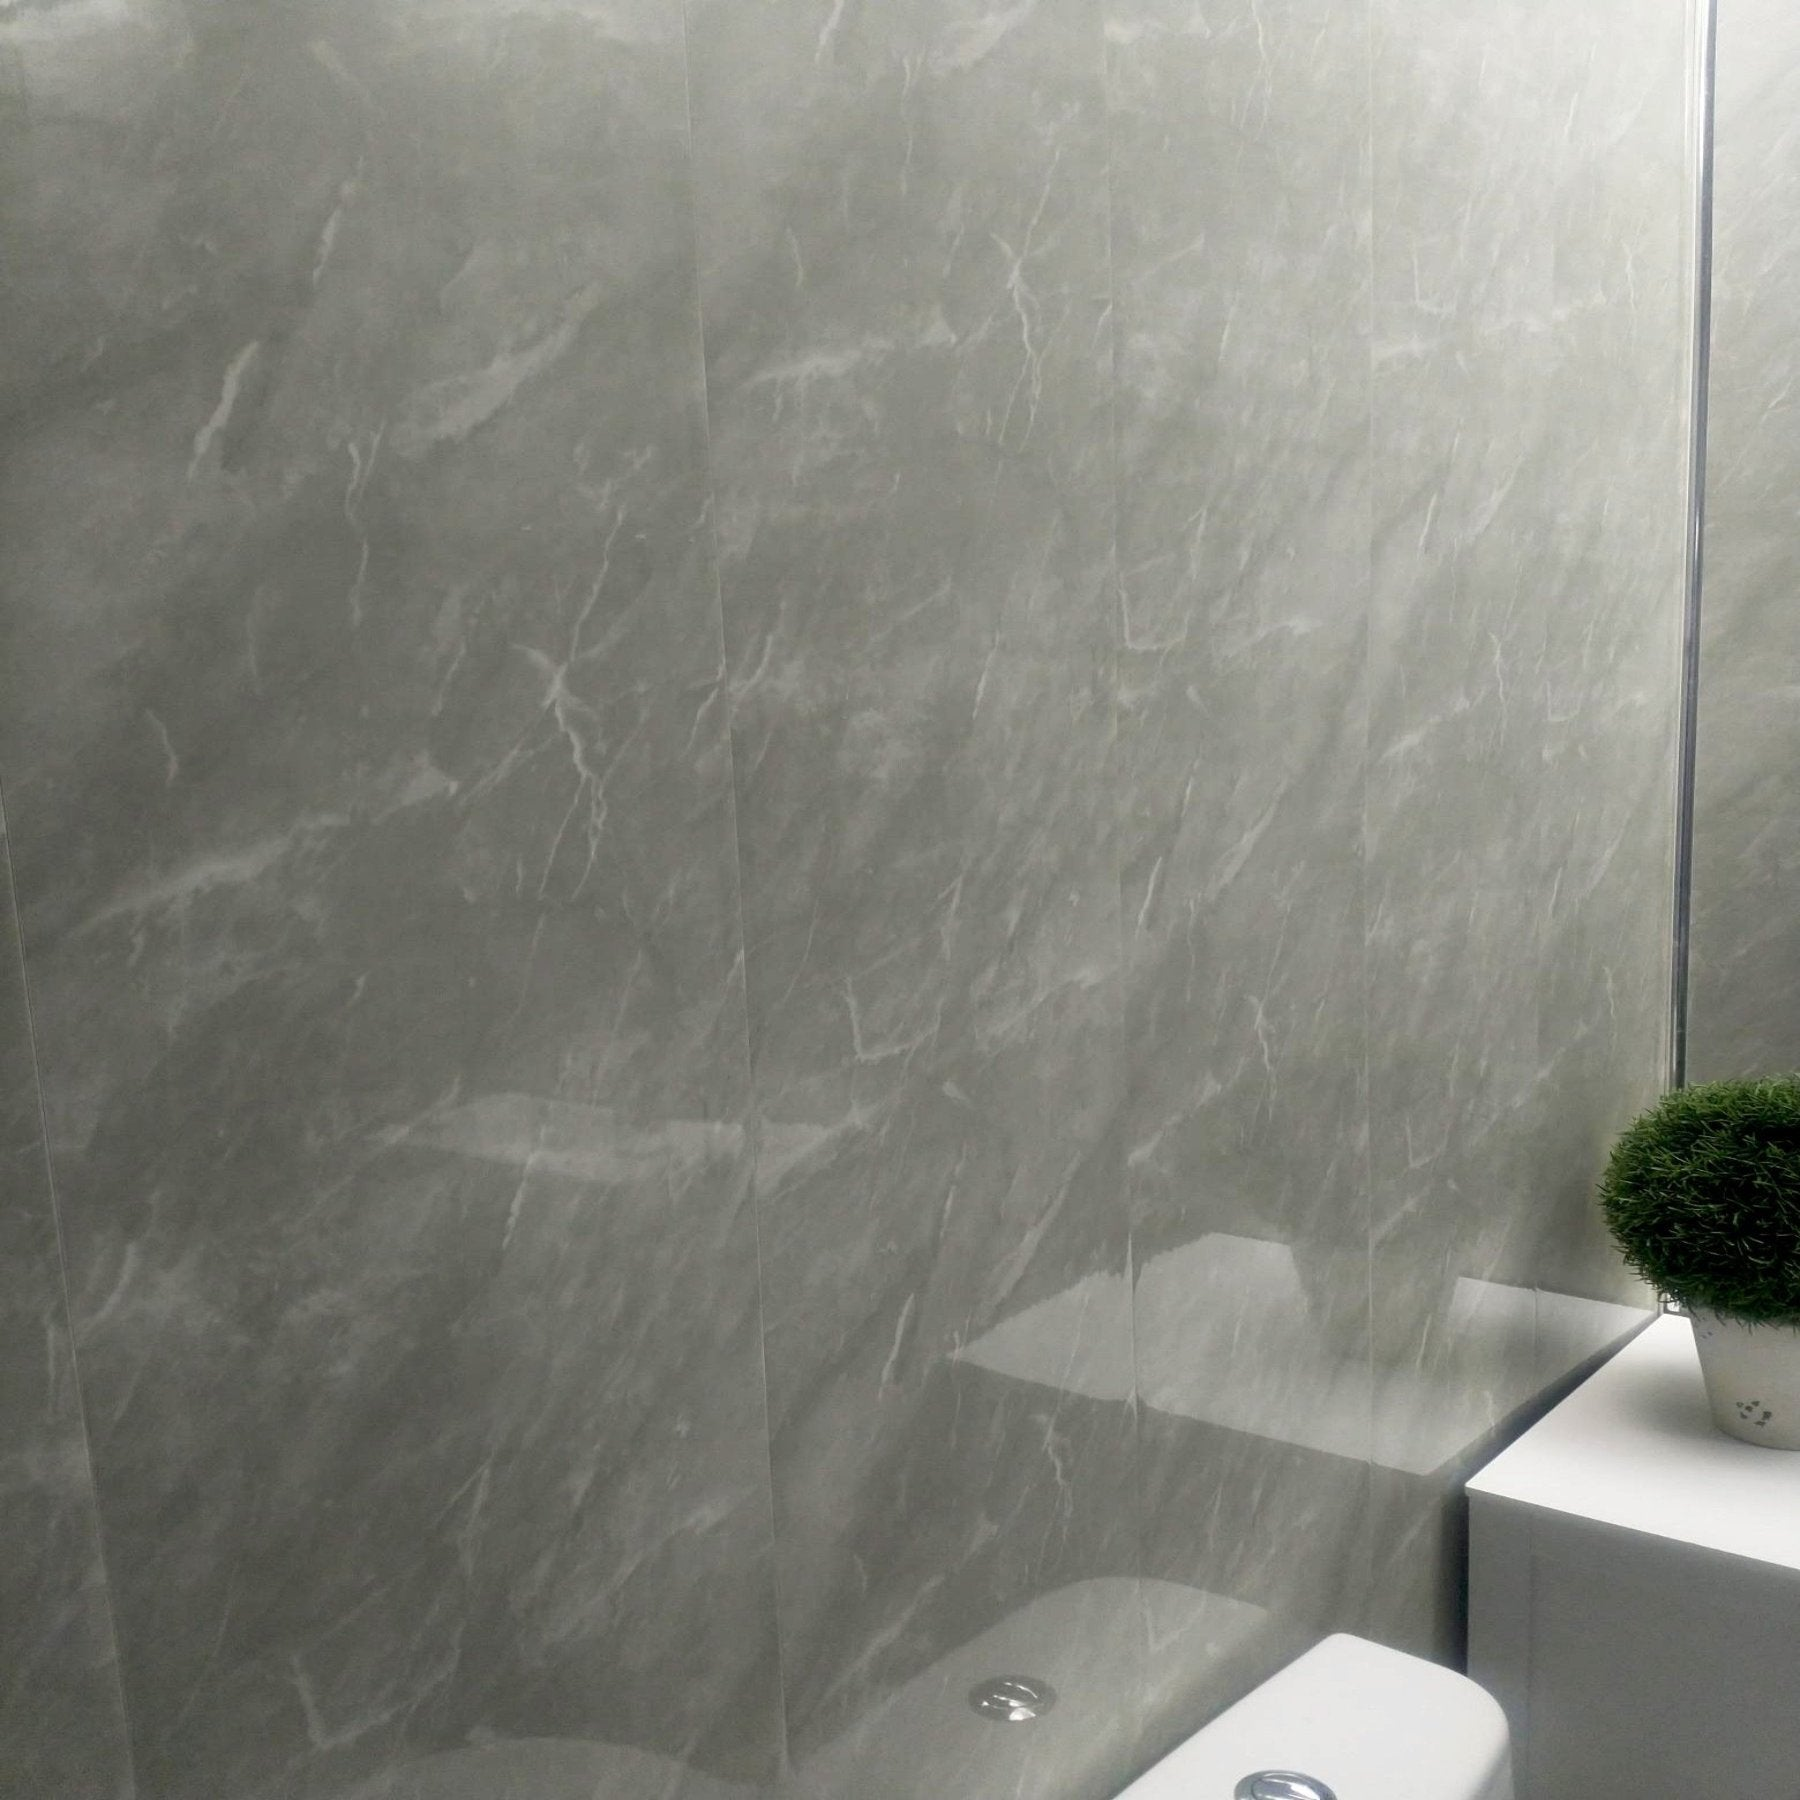 Grey Marble Bathroom Wall Panels Pvc 8mm Thick Cladding 2 6m X 250mm Claddtech